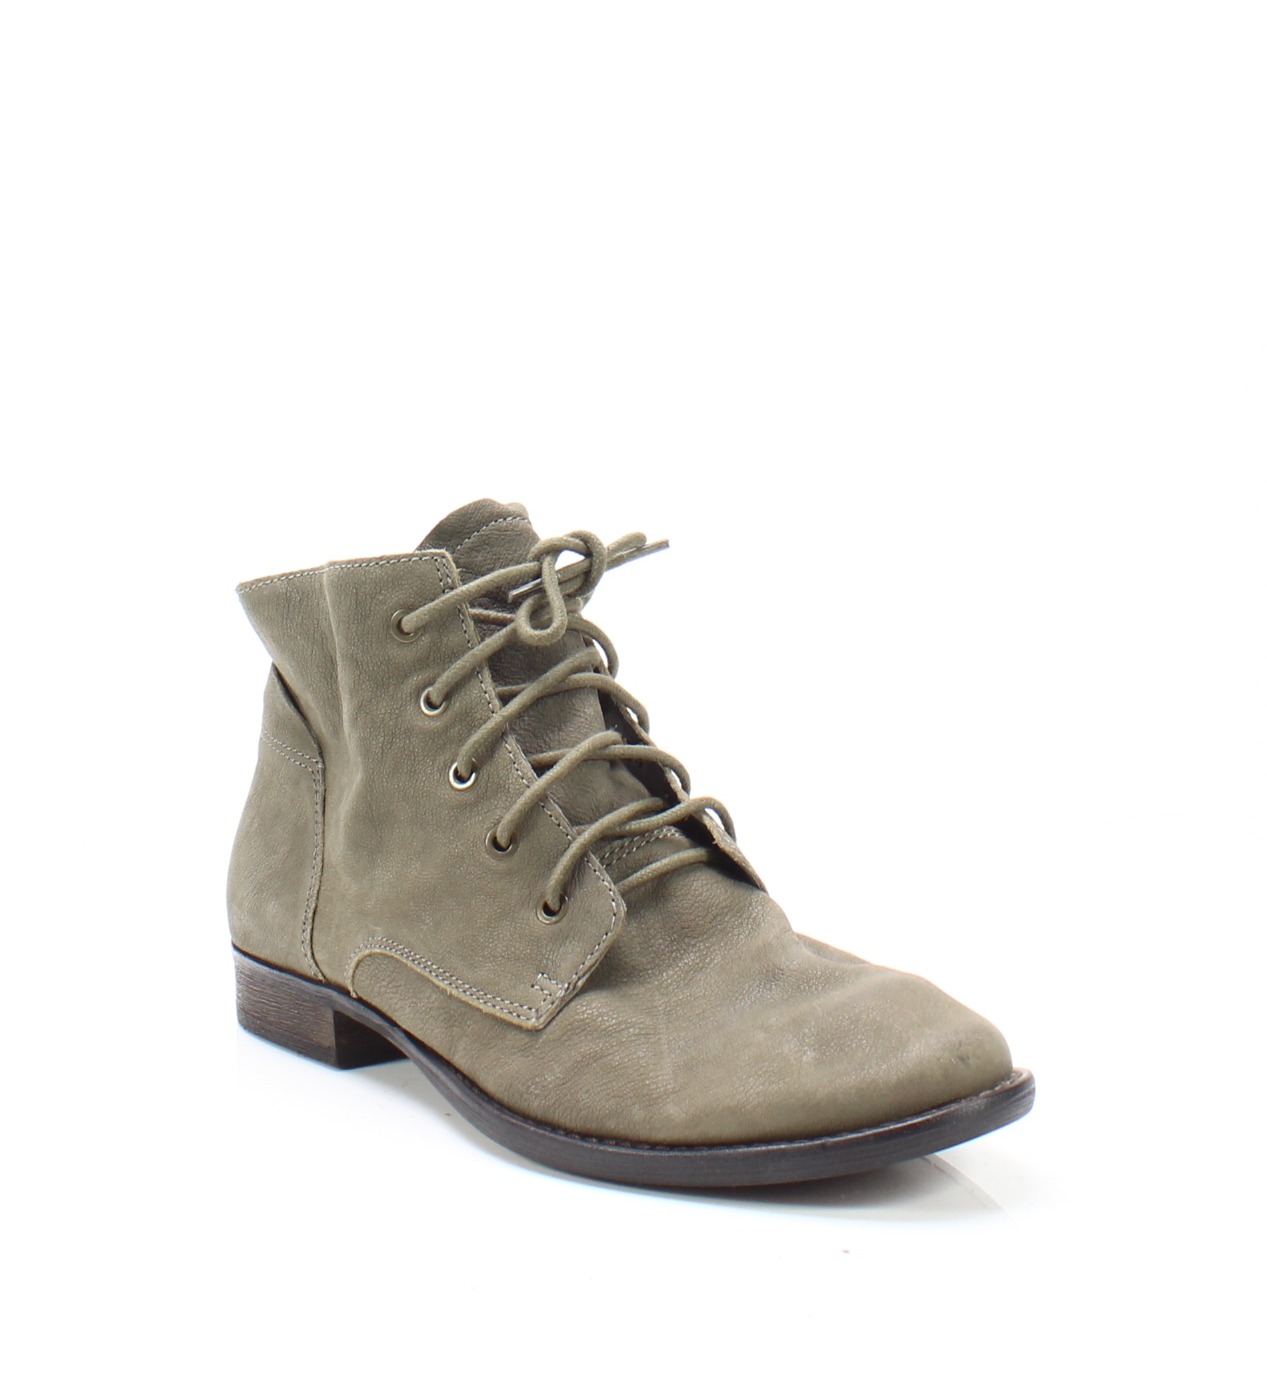 d968bfc67d032 Sam Edelman NEW Olive Green Women s Size 9.5M Mare Leather Booties  130-   079